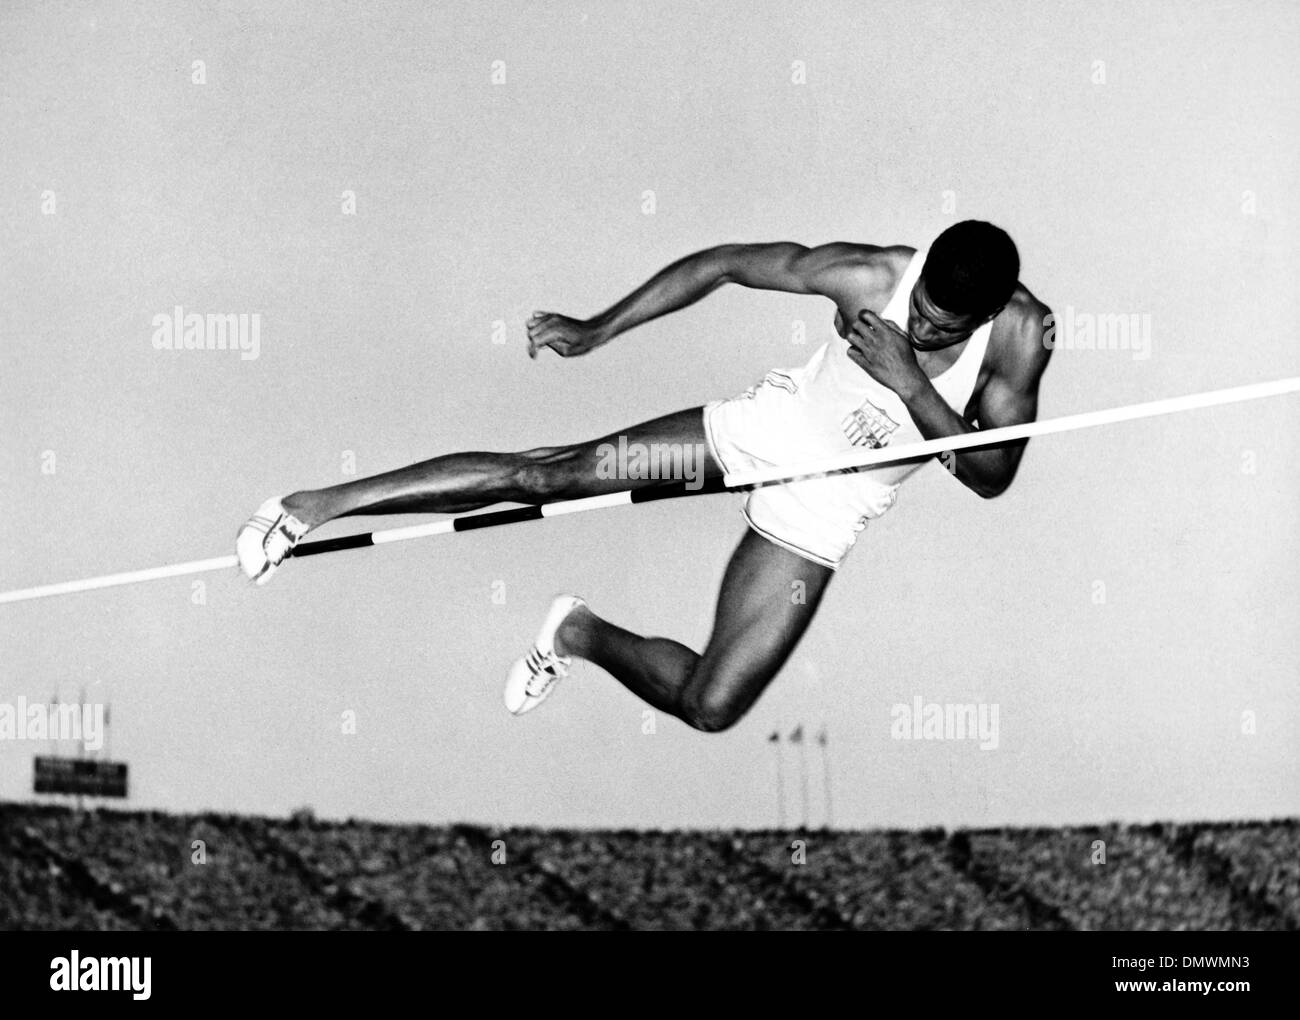 Aug 04, 1948; London, UK; High Jumper CHARLES DUMAS held the world's high jumping record and won the event in the 1948 London Summer Olympics. Dumas went on to be the first jumper to clear 7-0 1/2 in the 1956 Olympic Trials at the Los Angeles Coliseum. (Credit Image: © KEYSTONE Pictures USA) - Stock Image